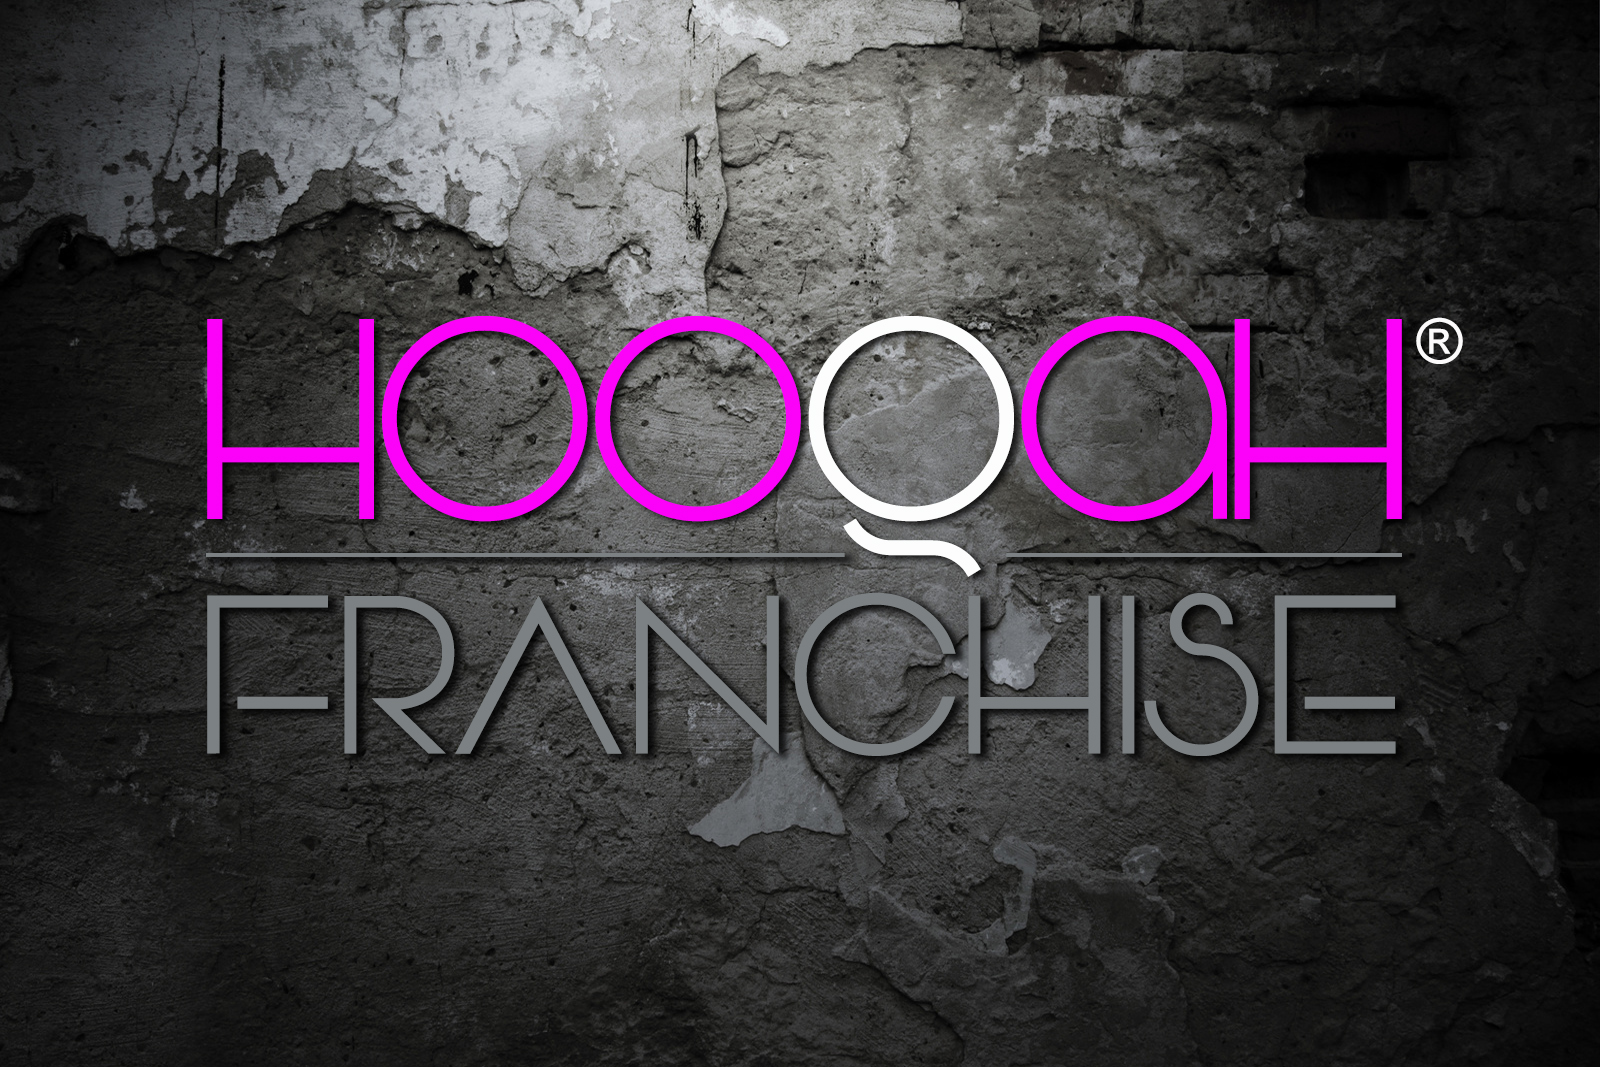 WEBSEITE HOOQAH FRANCHISE